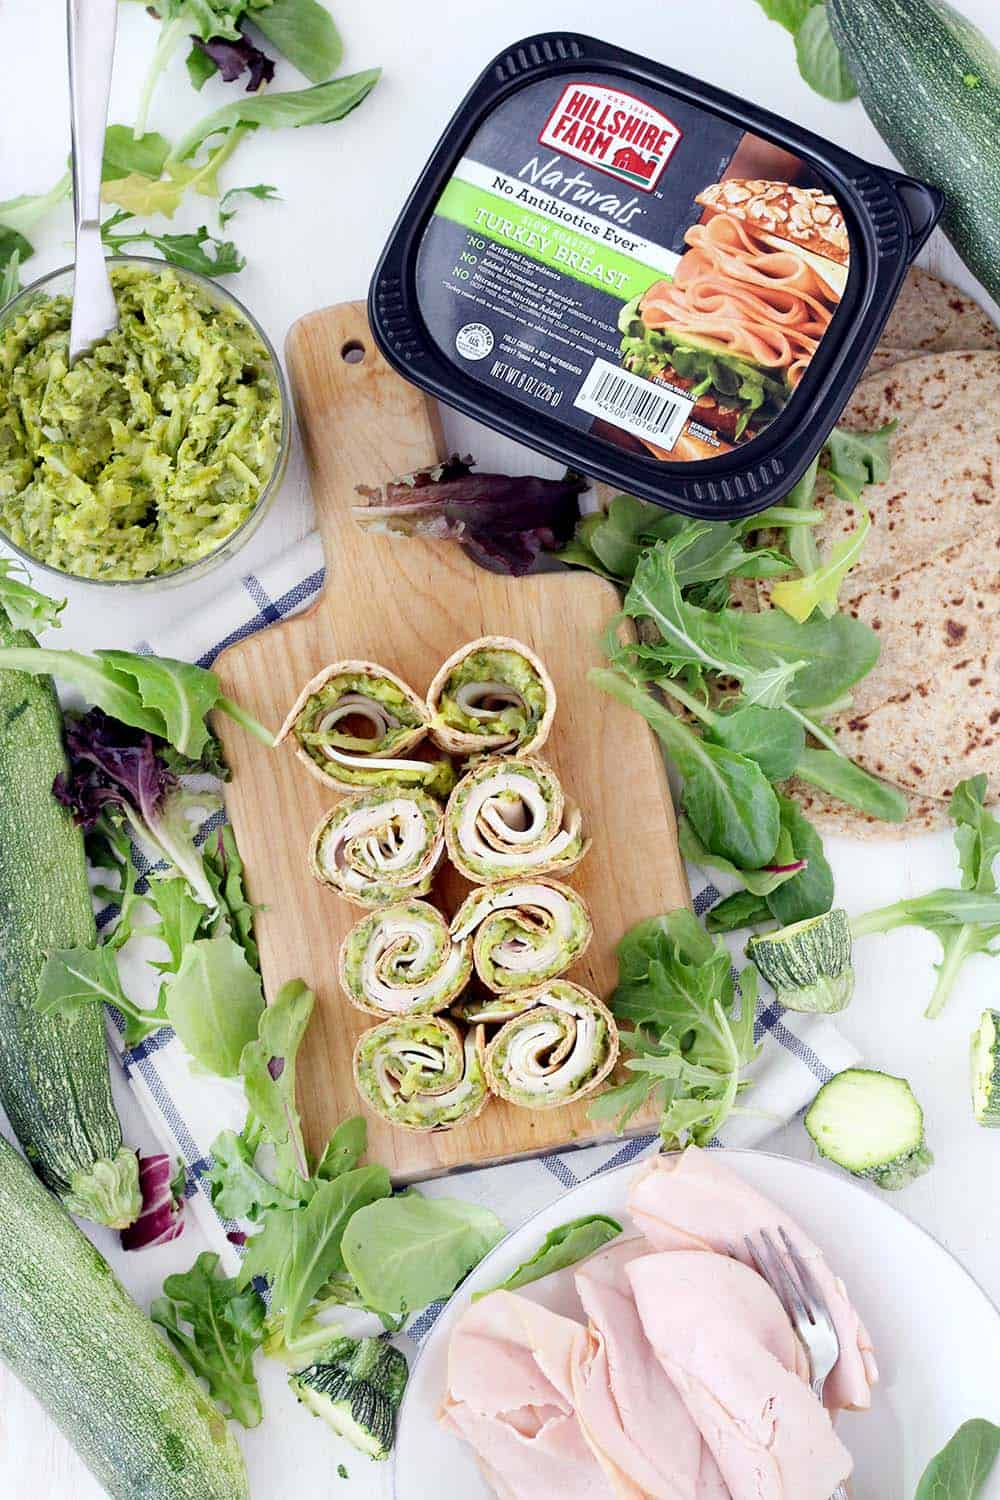 These Turkey Roll-Ups are spread with yummy, veggie-packed Zucchini Butter instead of mayo for an easy meal-prep sandwich for lunches all week long! Great for back-to-school and super kid friendly. Use any leftover zucchini butter in an omelette, as a dip, or to stuff chicken breasts.